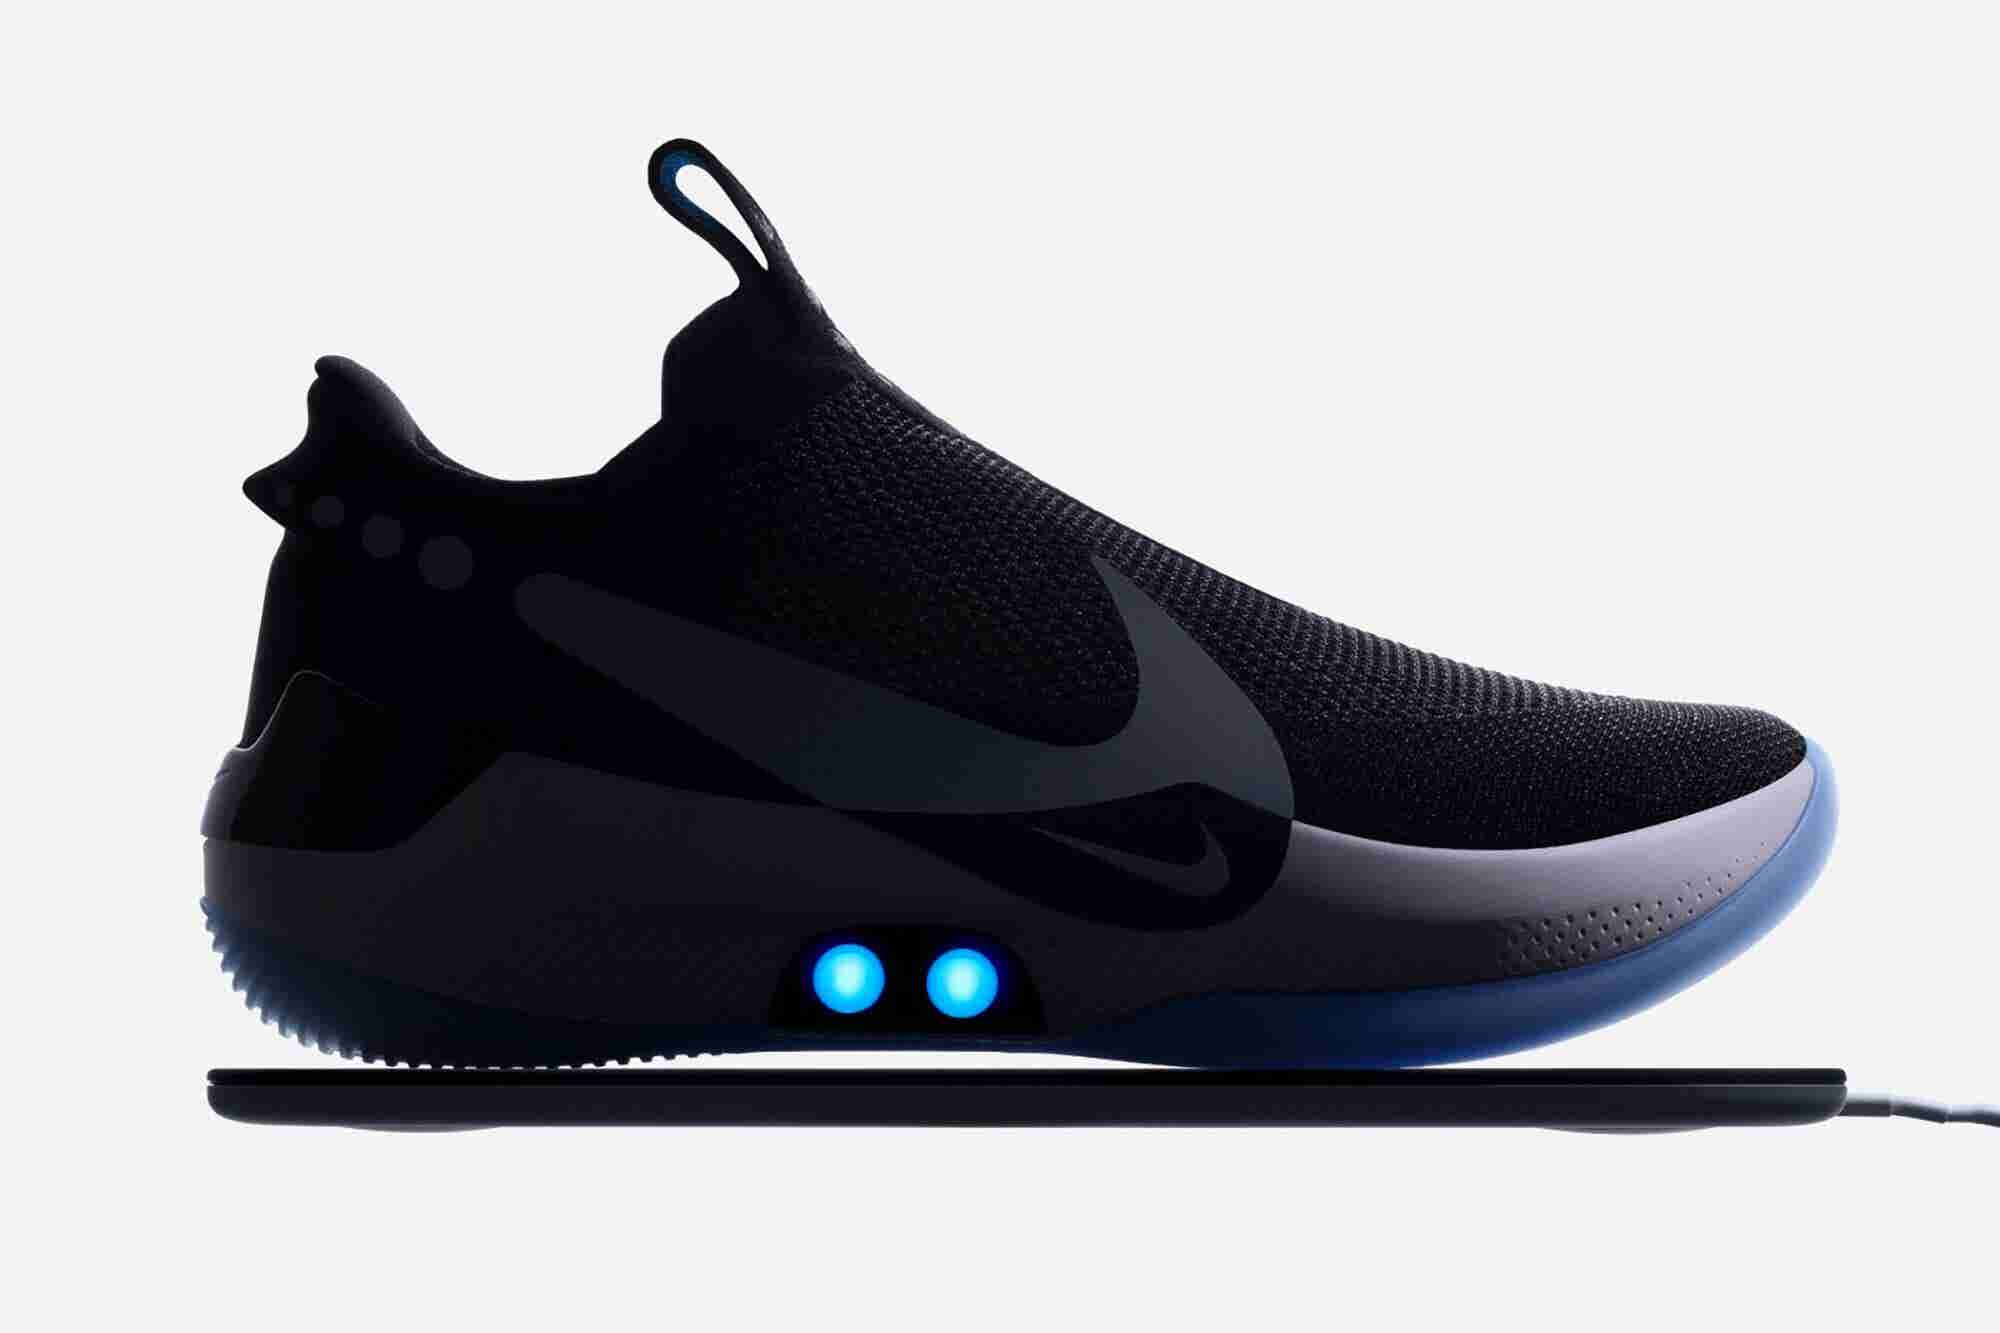 Nike's Adapt BB Is an App-Controlled, Self-Lacing Basketball Shoe